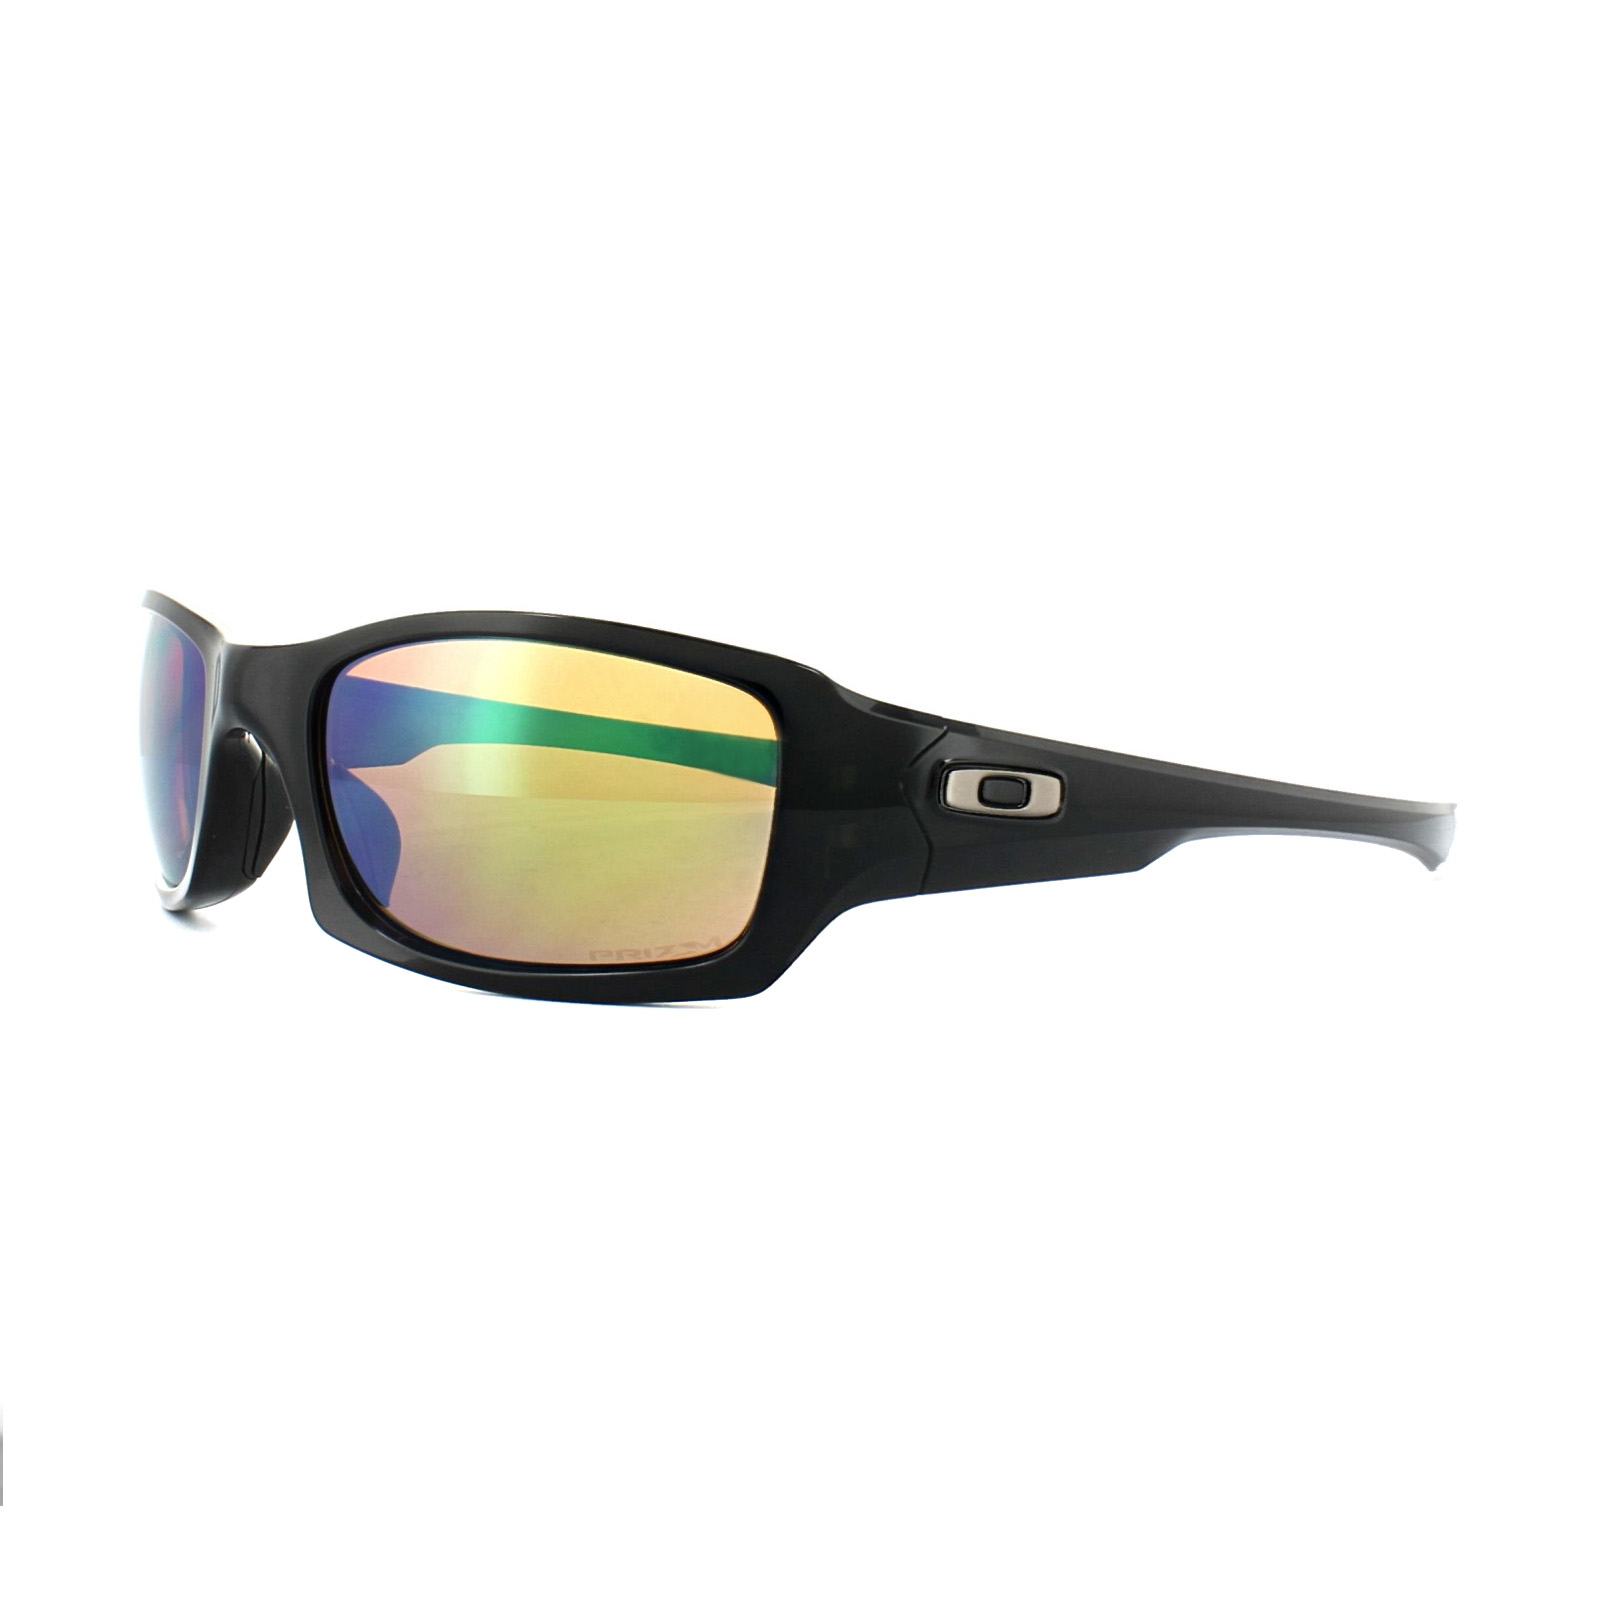 70da4c385a811 Sentinel Oakley Sunglasses Fives Squared OO9238-18 Black Prizm Shallow  Water Polarized